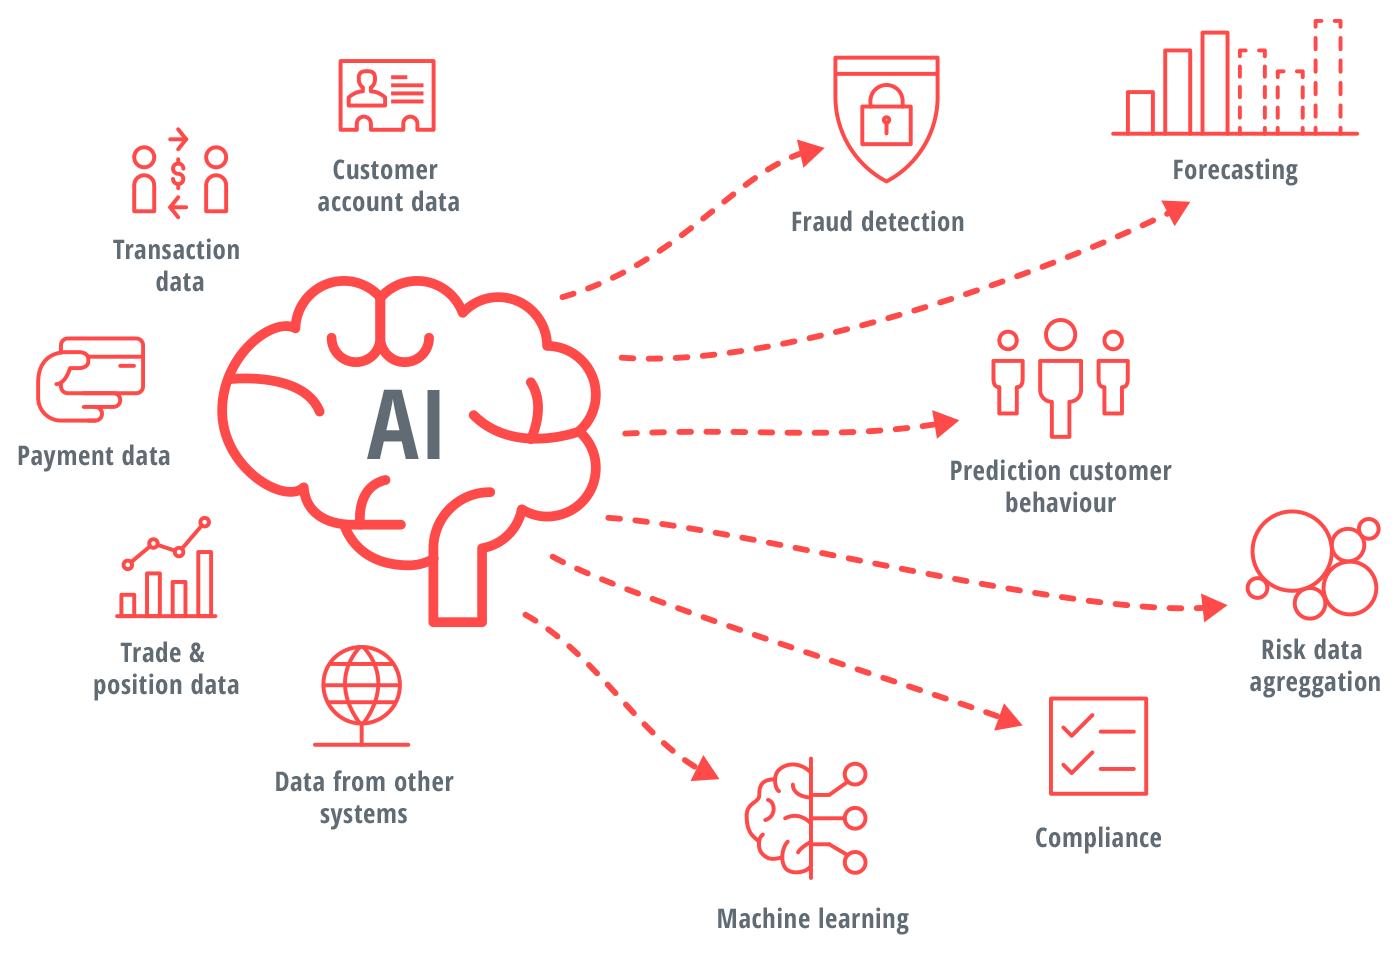 Graphical representation of the application areas of AI solutions such as machine learning, compliance, risk data, trade, payment data, customer data and fraud detection